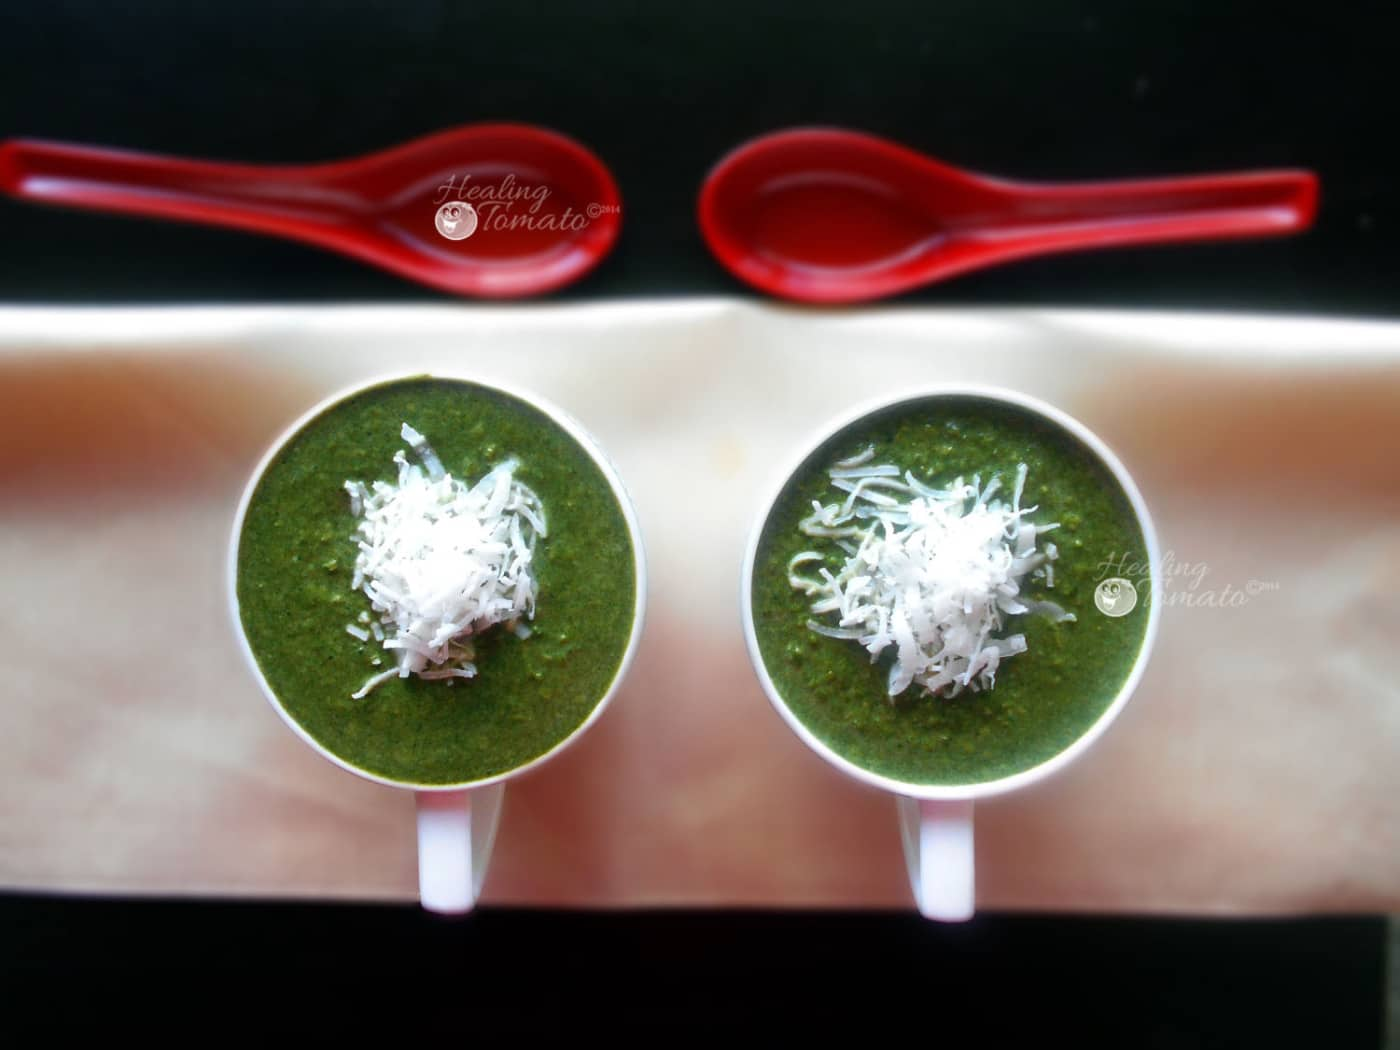 Spinach Soup with Coconut and Corn. This flavorsome and hearty soup is made with spinach, coconut and corn. Vegetarian's delight